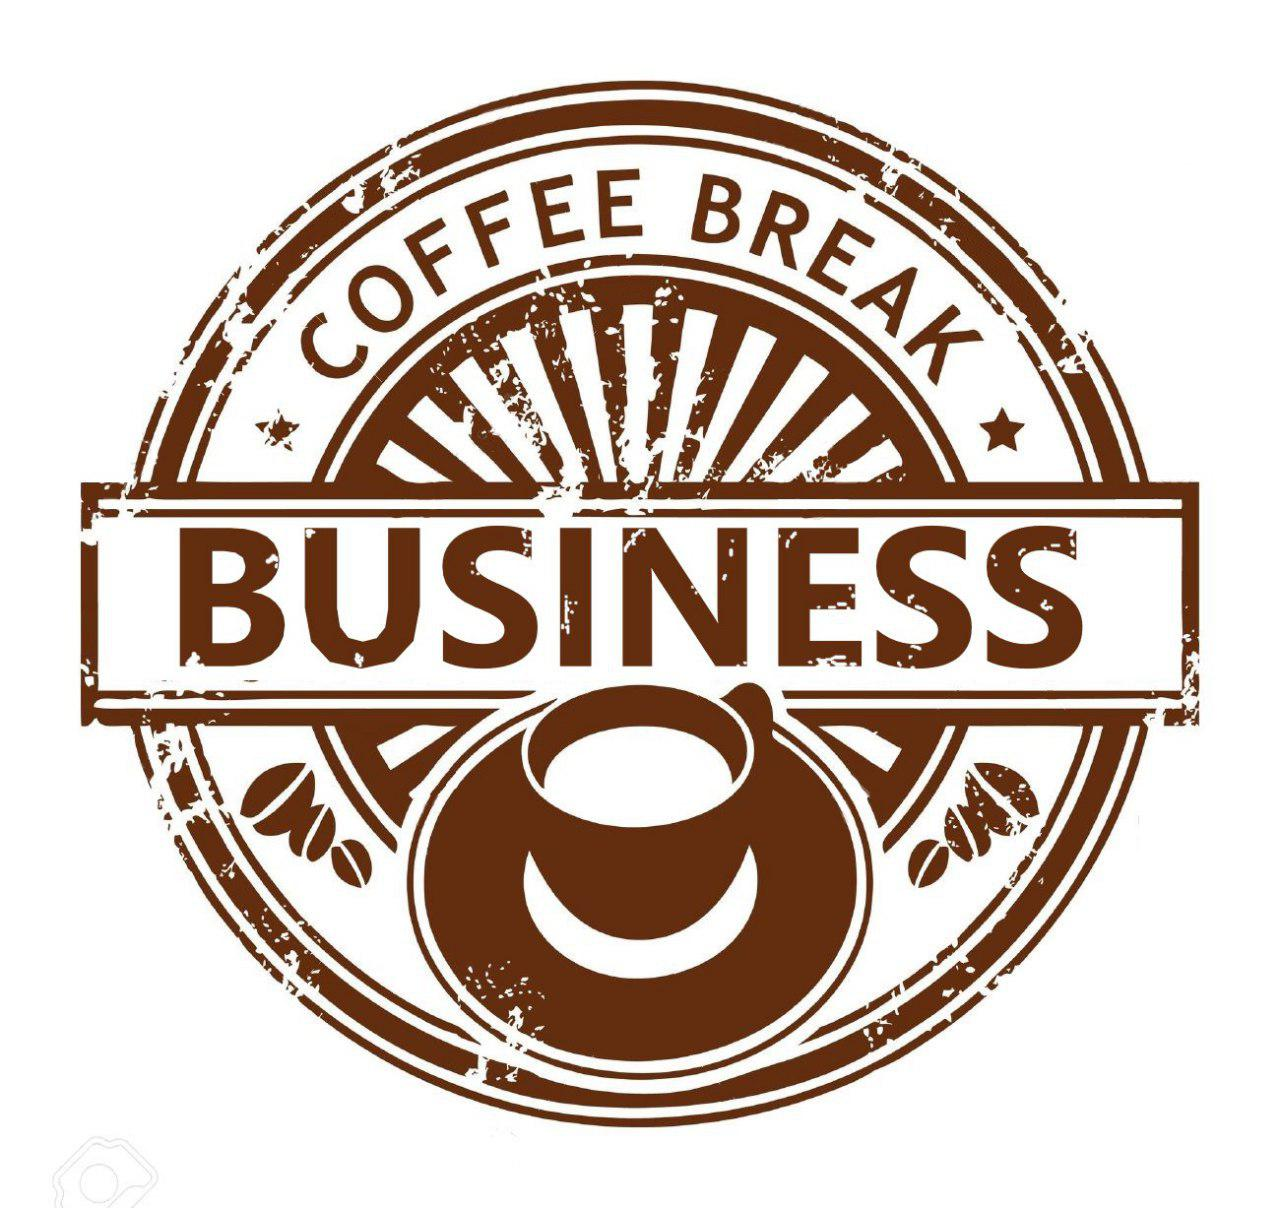 Business Coffee Break